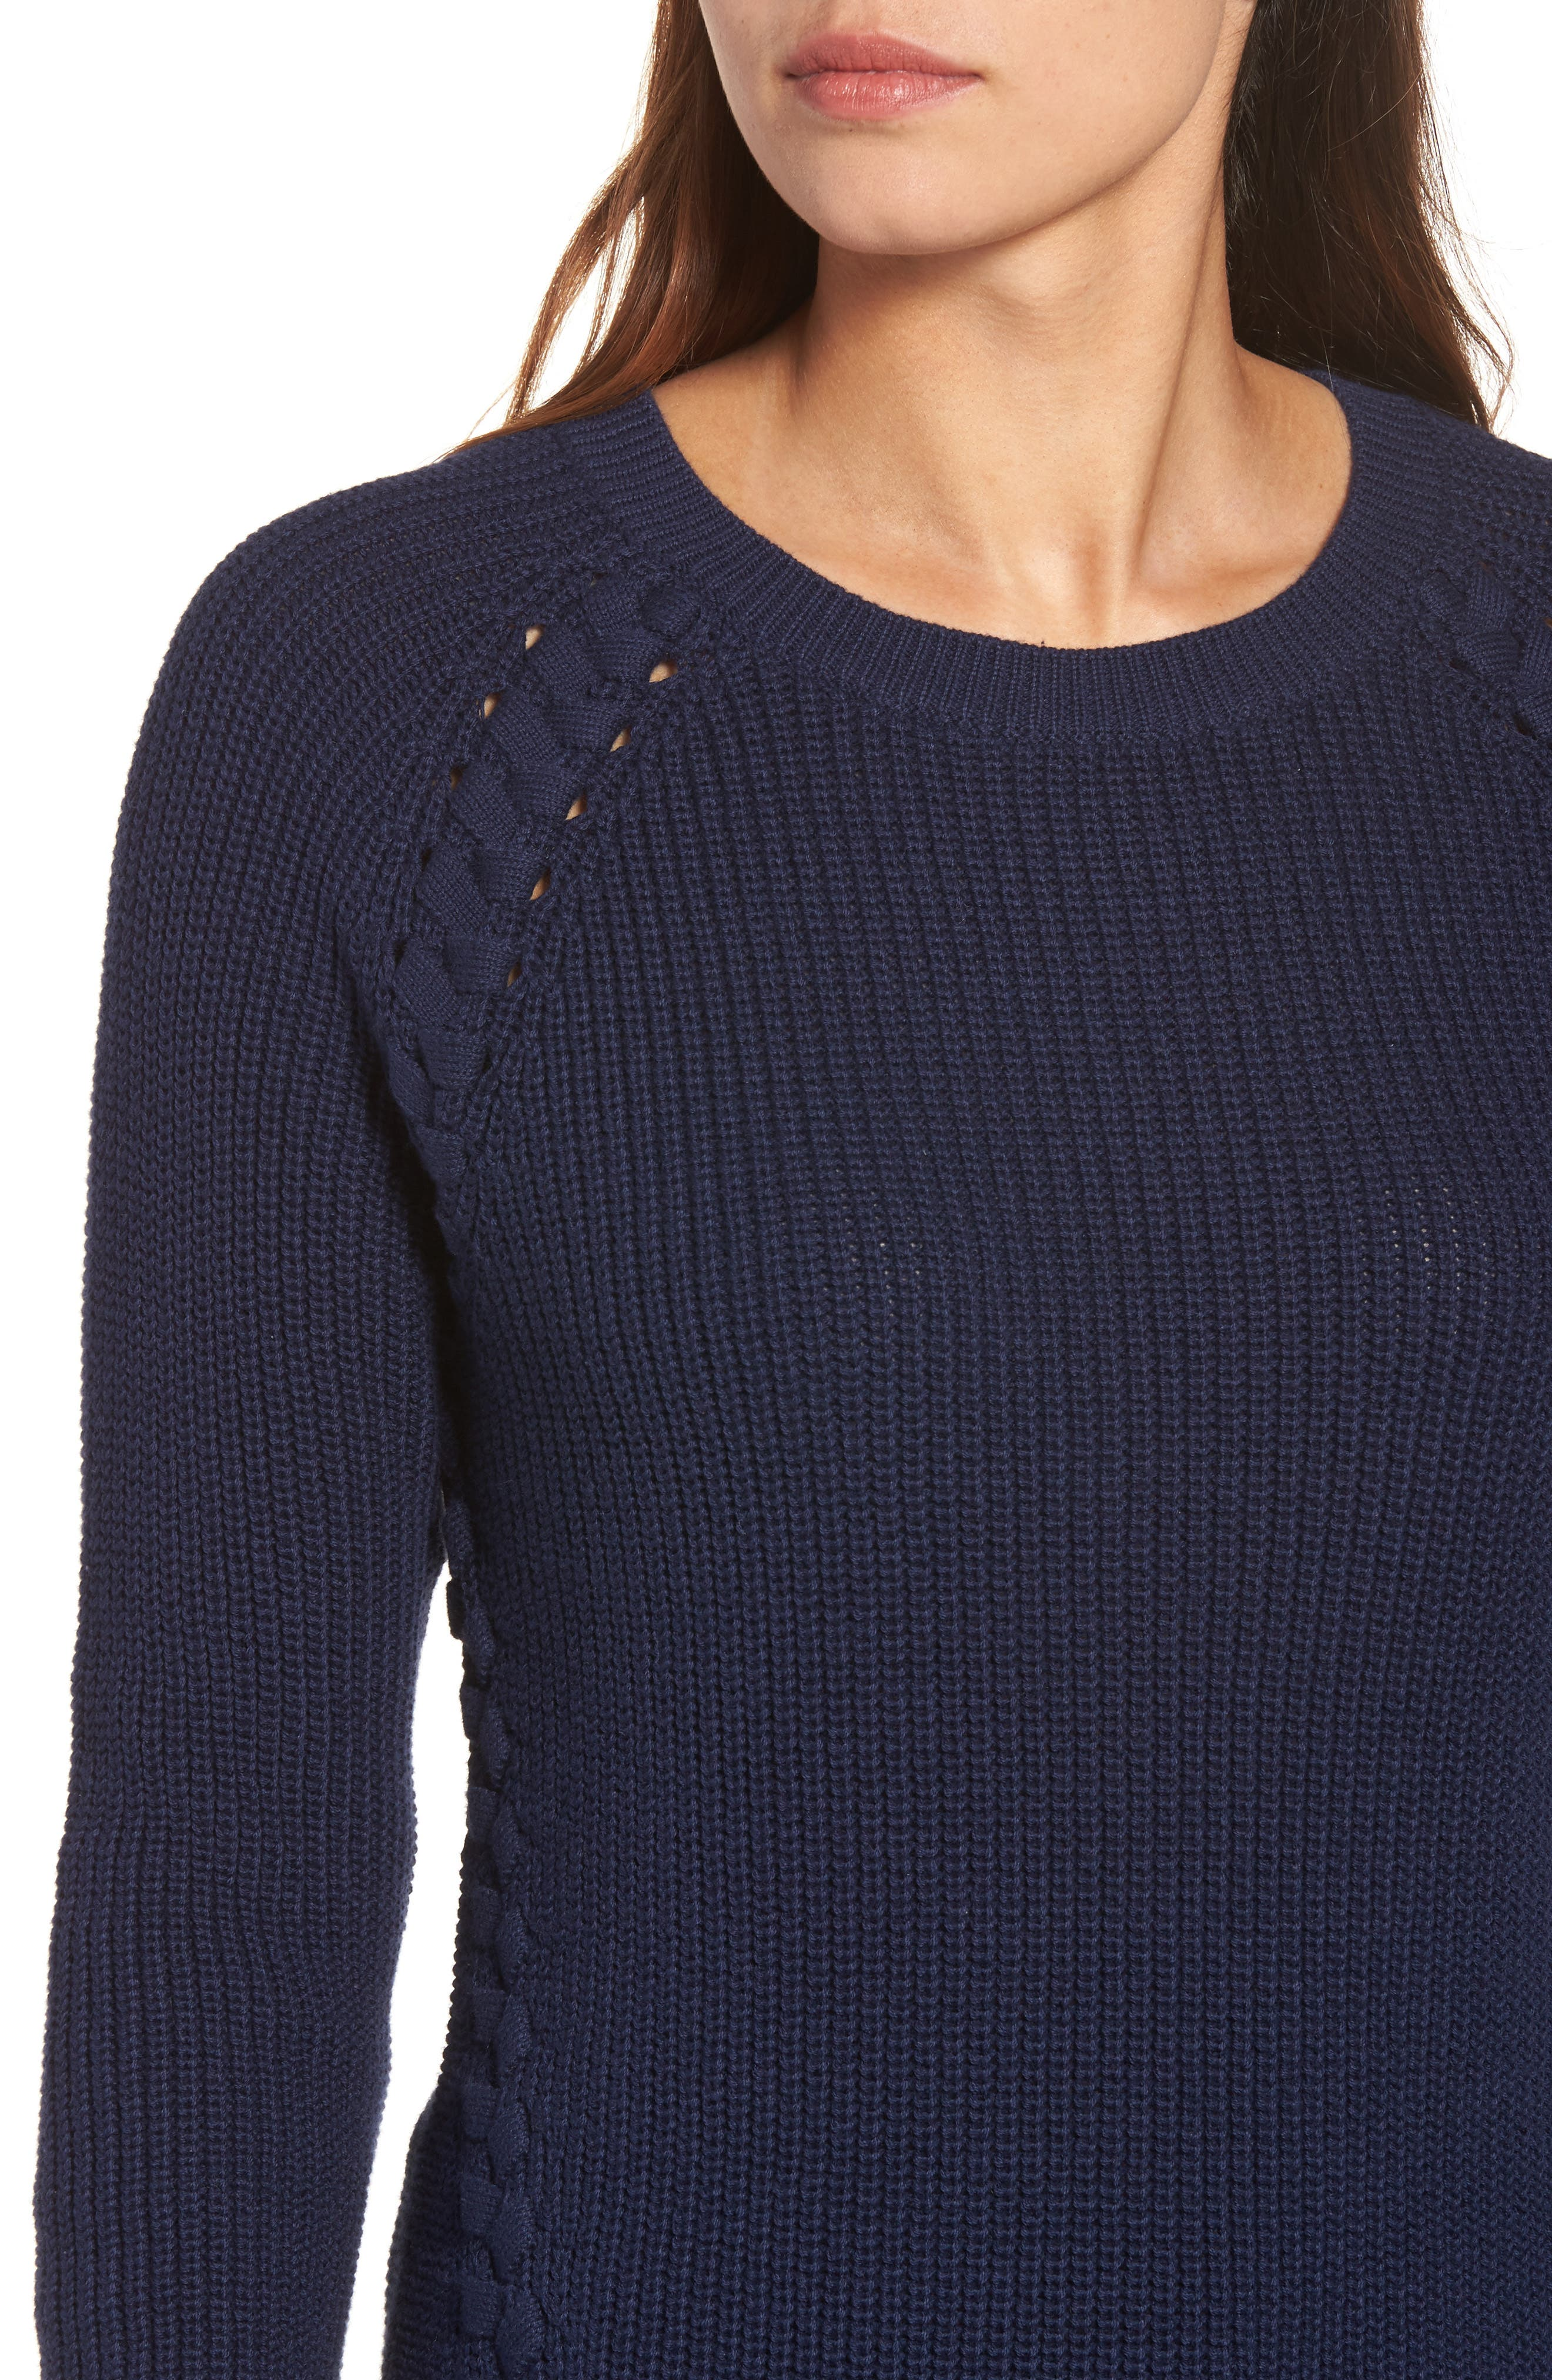 Lace-Up Sweater,                             Alternate thumbnail 4, color,                             410